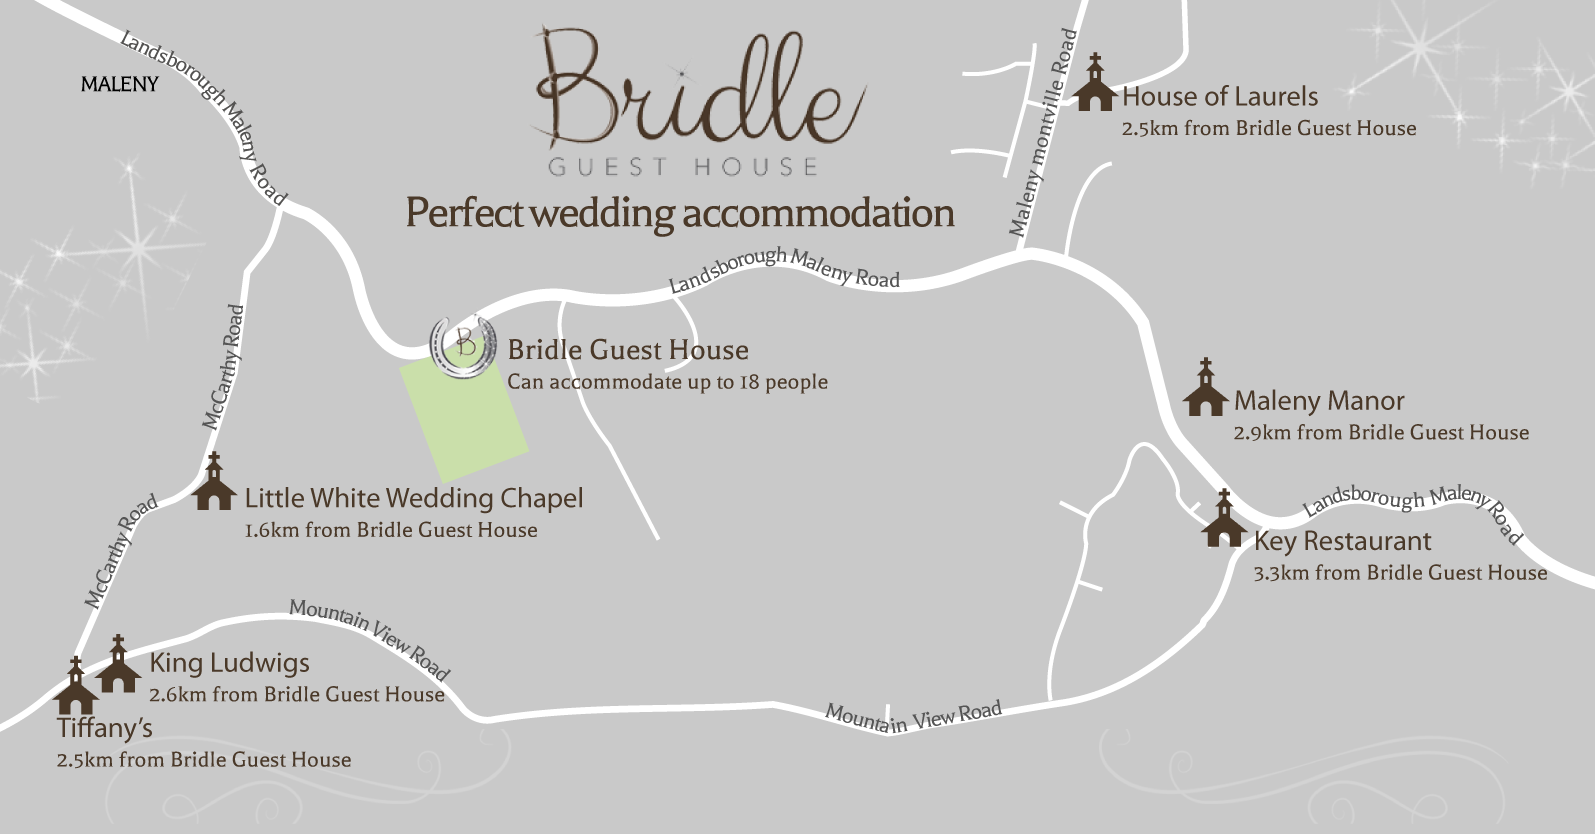 Wedding Venue accommodation Maleny